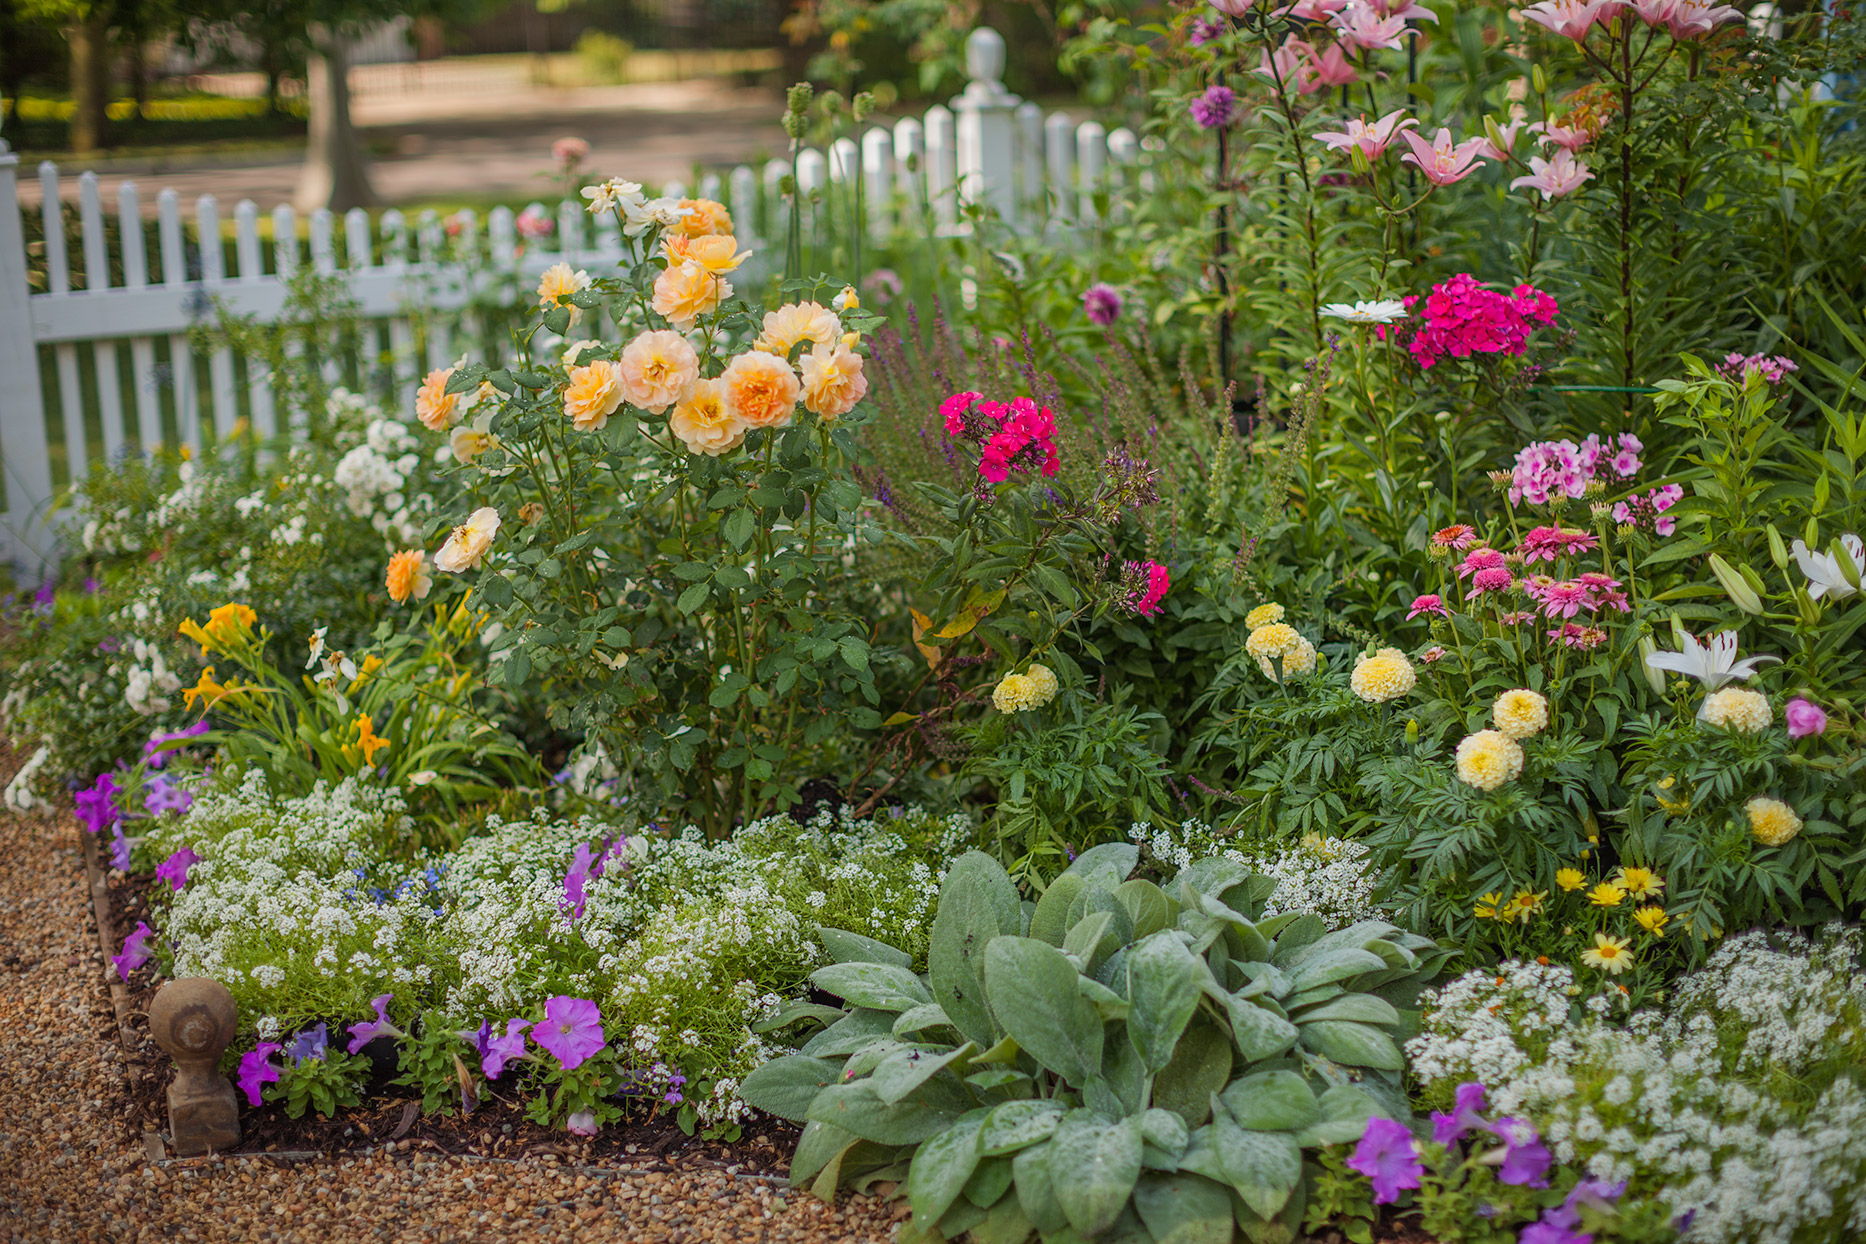 image of flowers in a garden